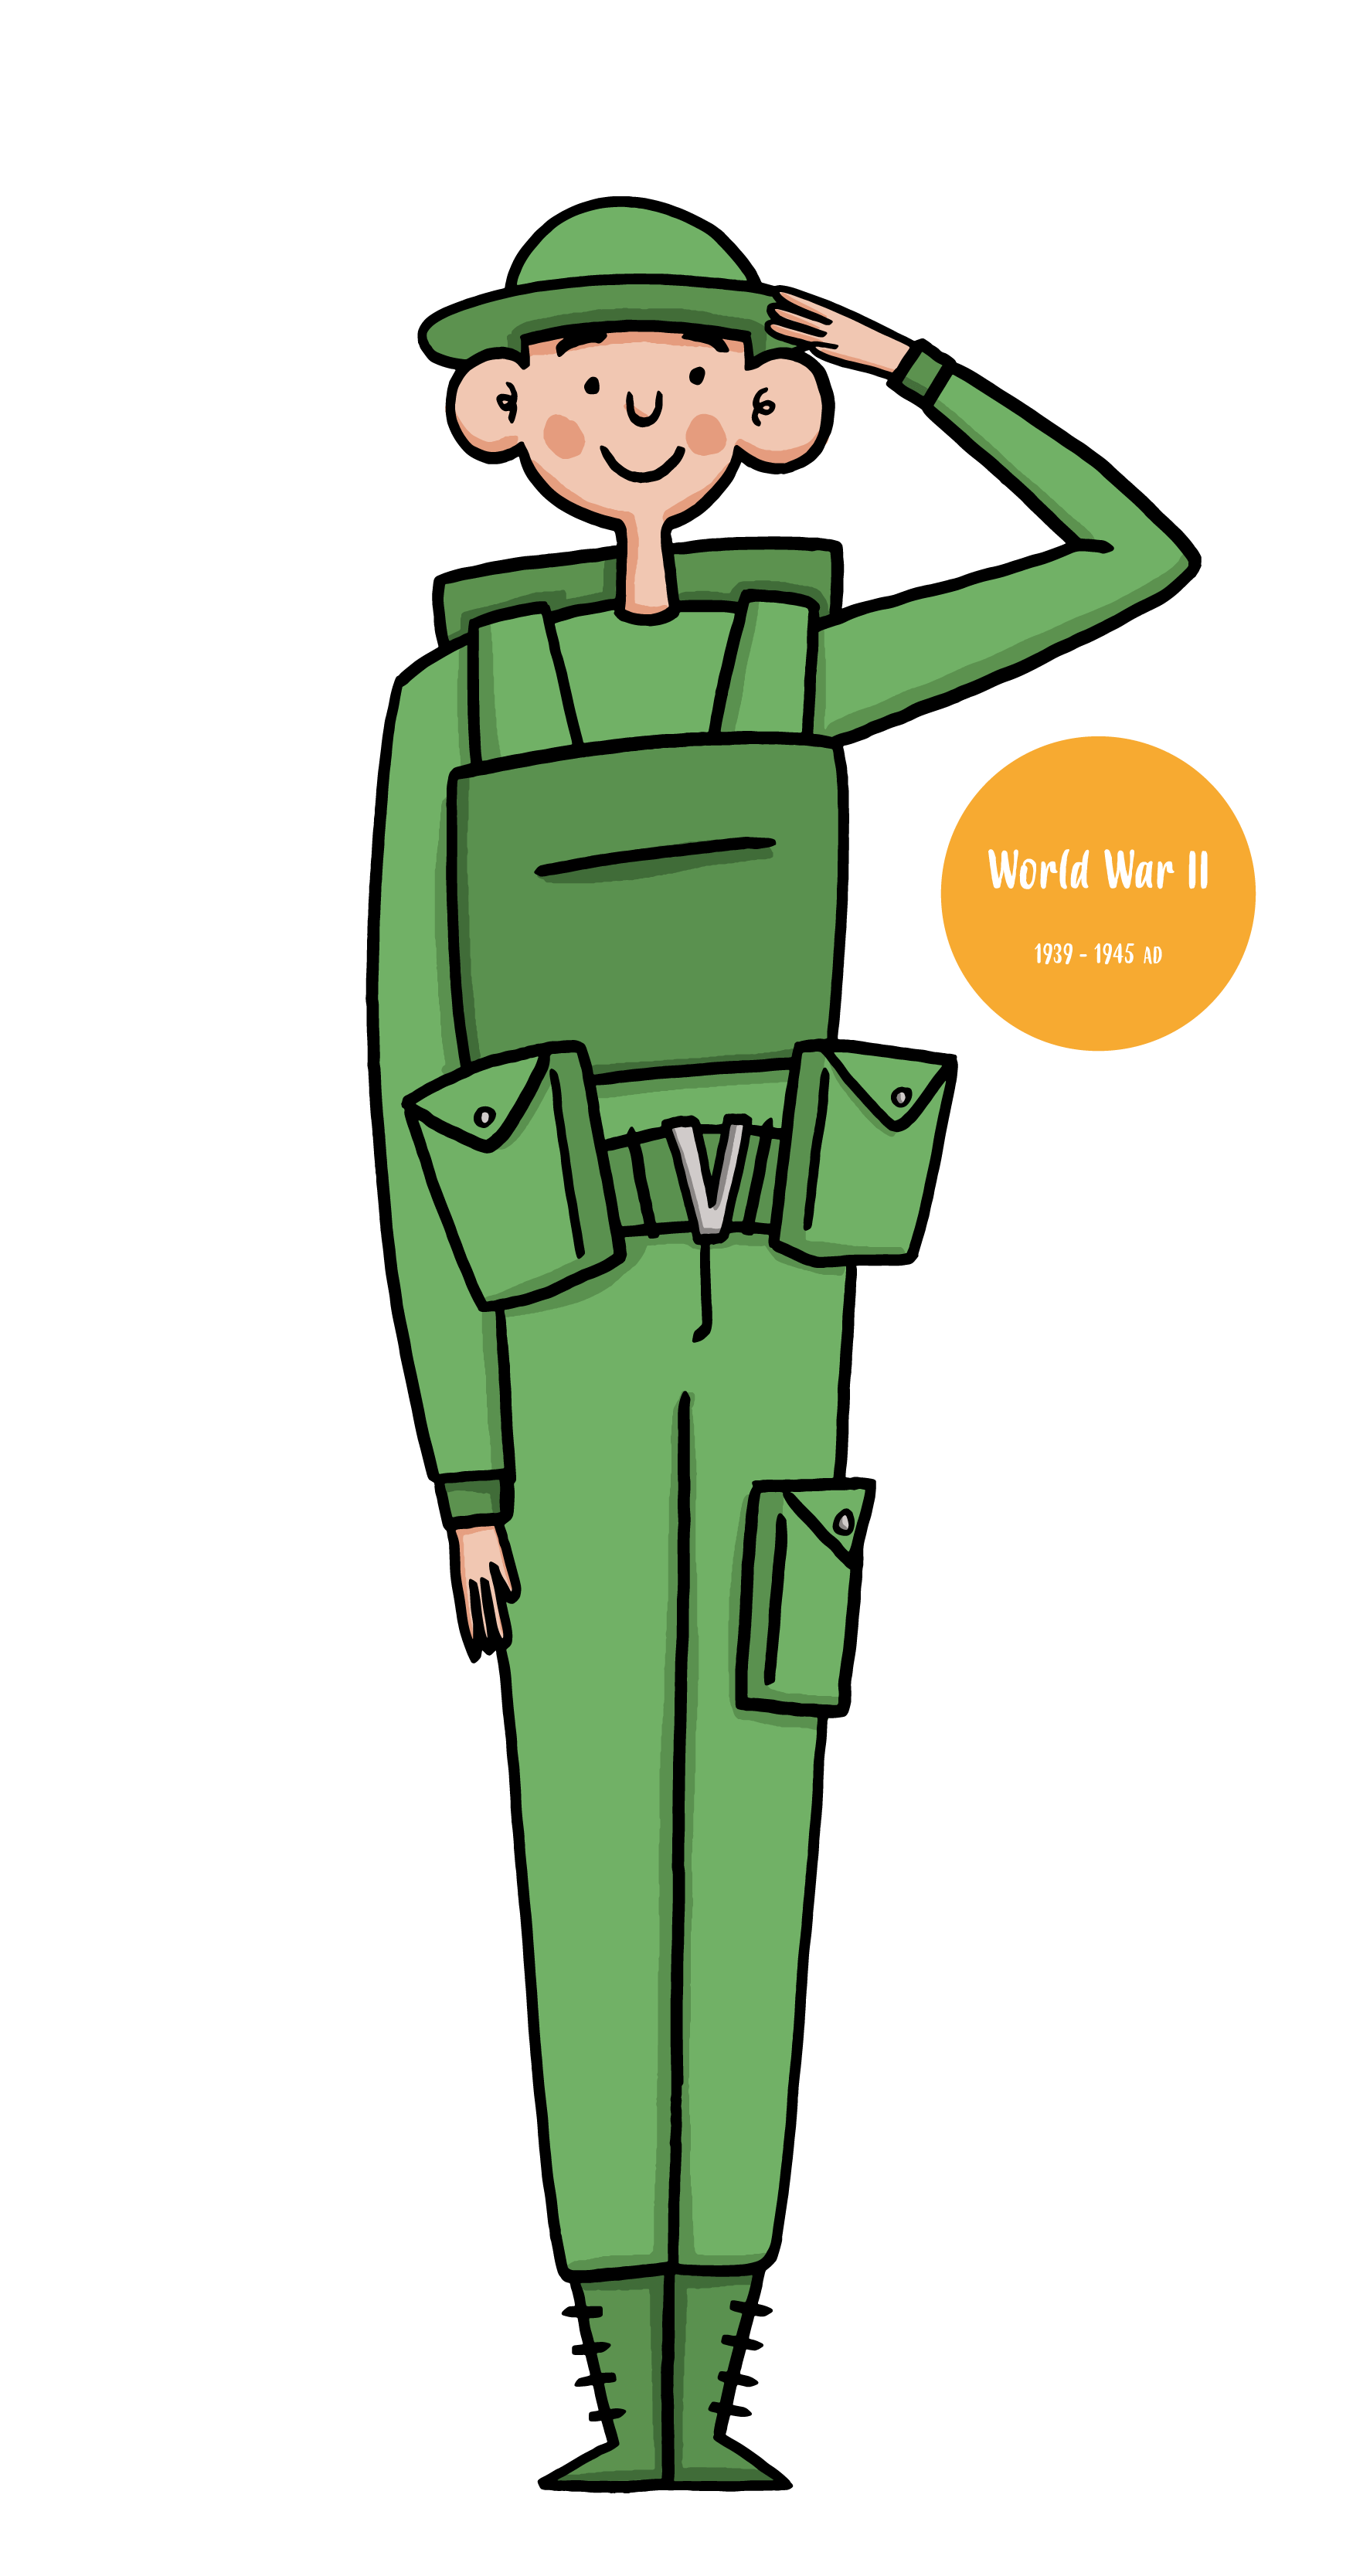 happy_history_character_world_war_one.png